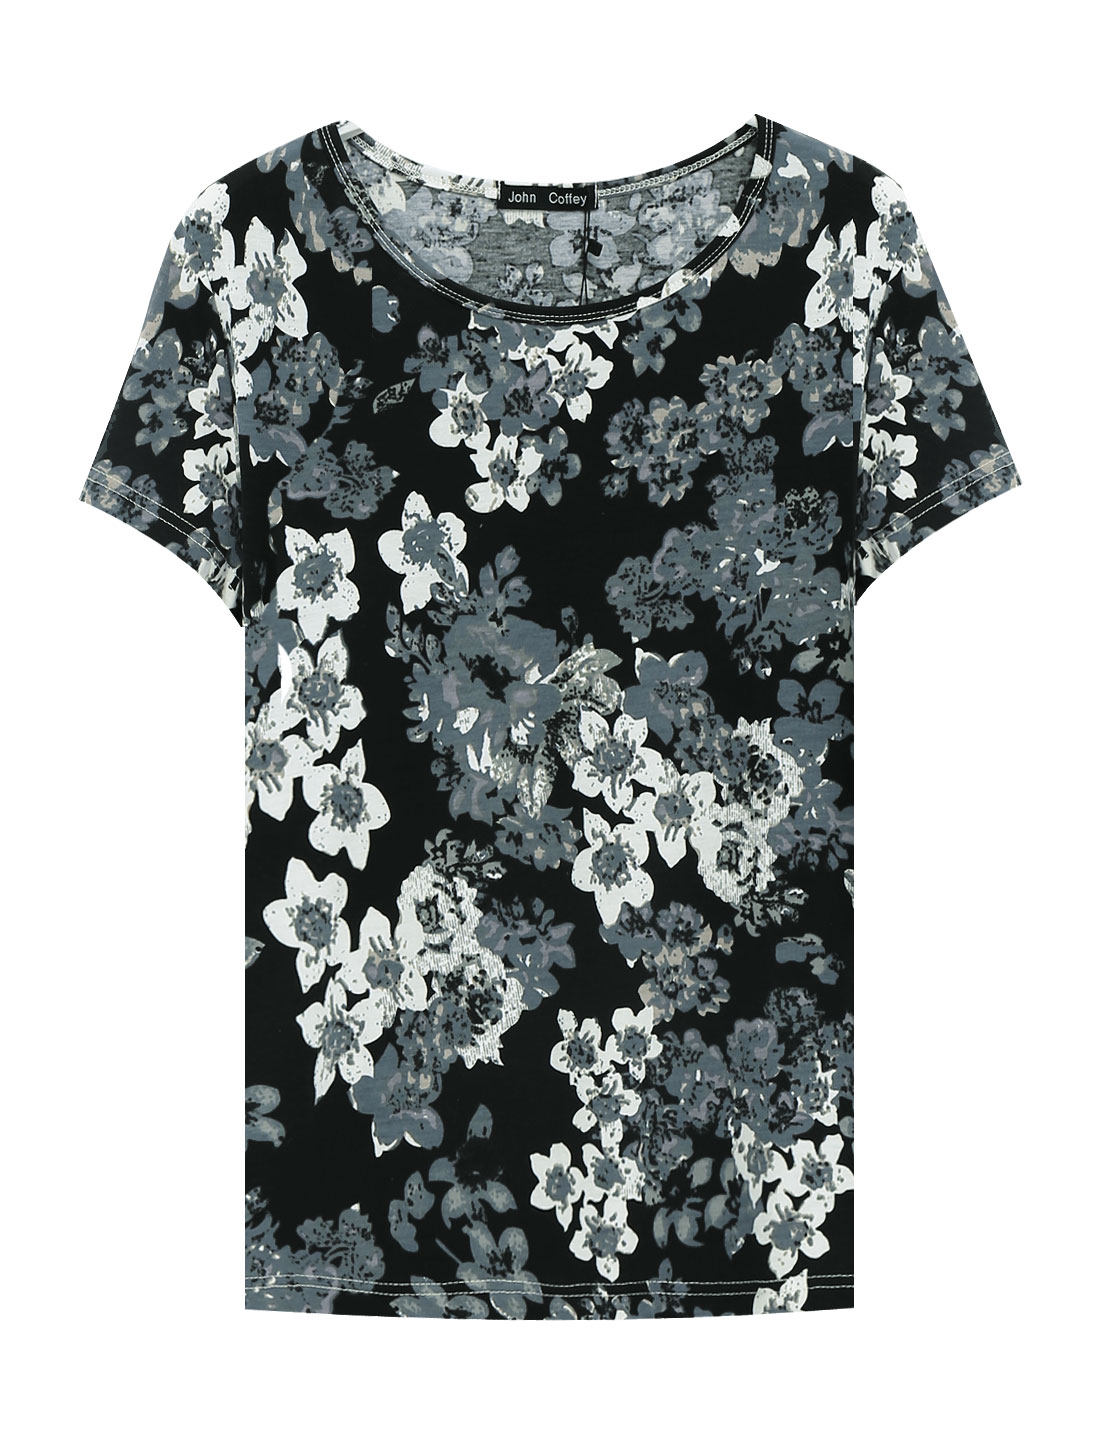 Man Short Sleeve Round Neck Flower Pattern Tee Shirt Black Blue M